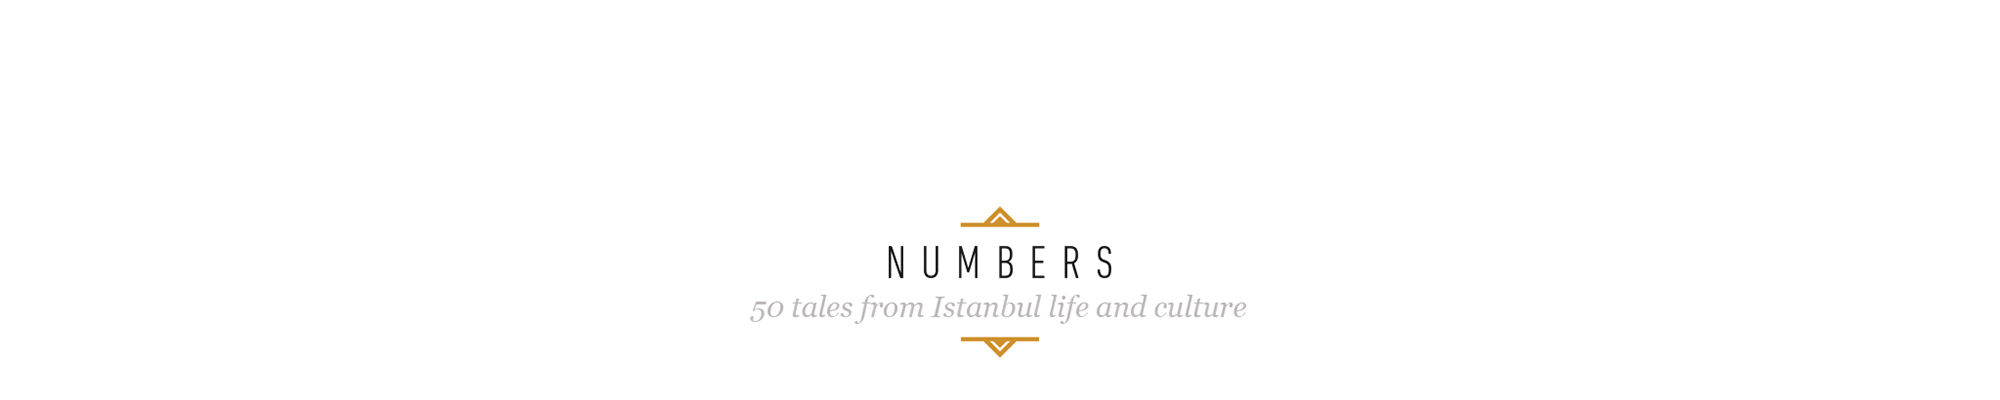 ISTANBUL_Numbers-Title